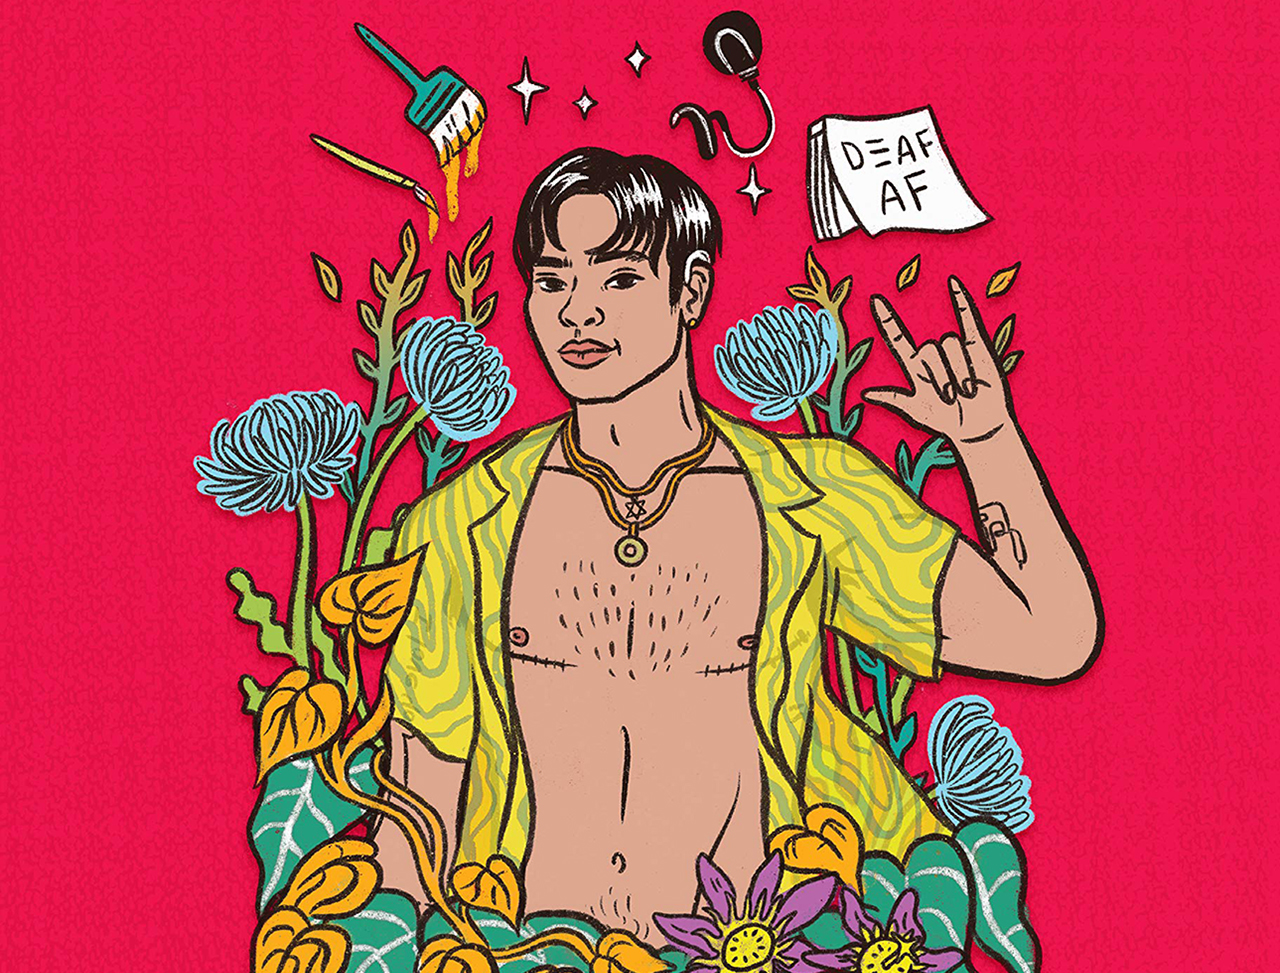 """The cover features a bright illustration of the author, a young man with Asian features, with a yellow button shirt on, unbuttoned all the way down. he is surrounded by flowers and wearing a star of david necklace. a sign floating near him reads """"Deaf AF"""""""